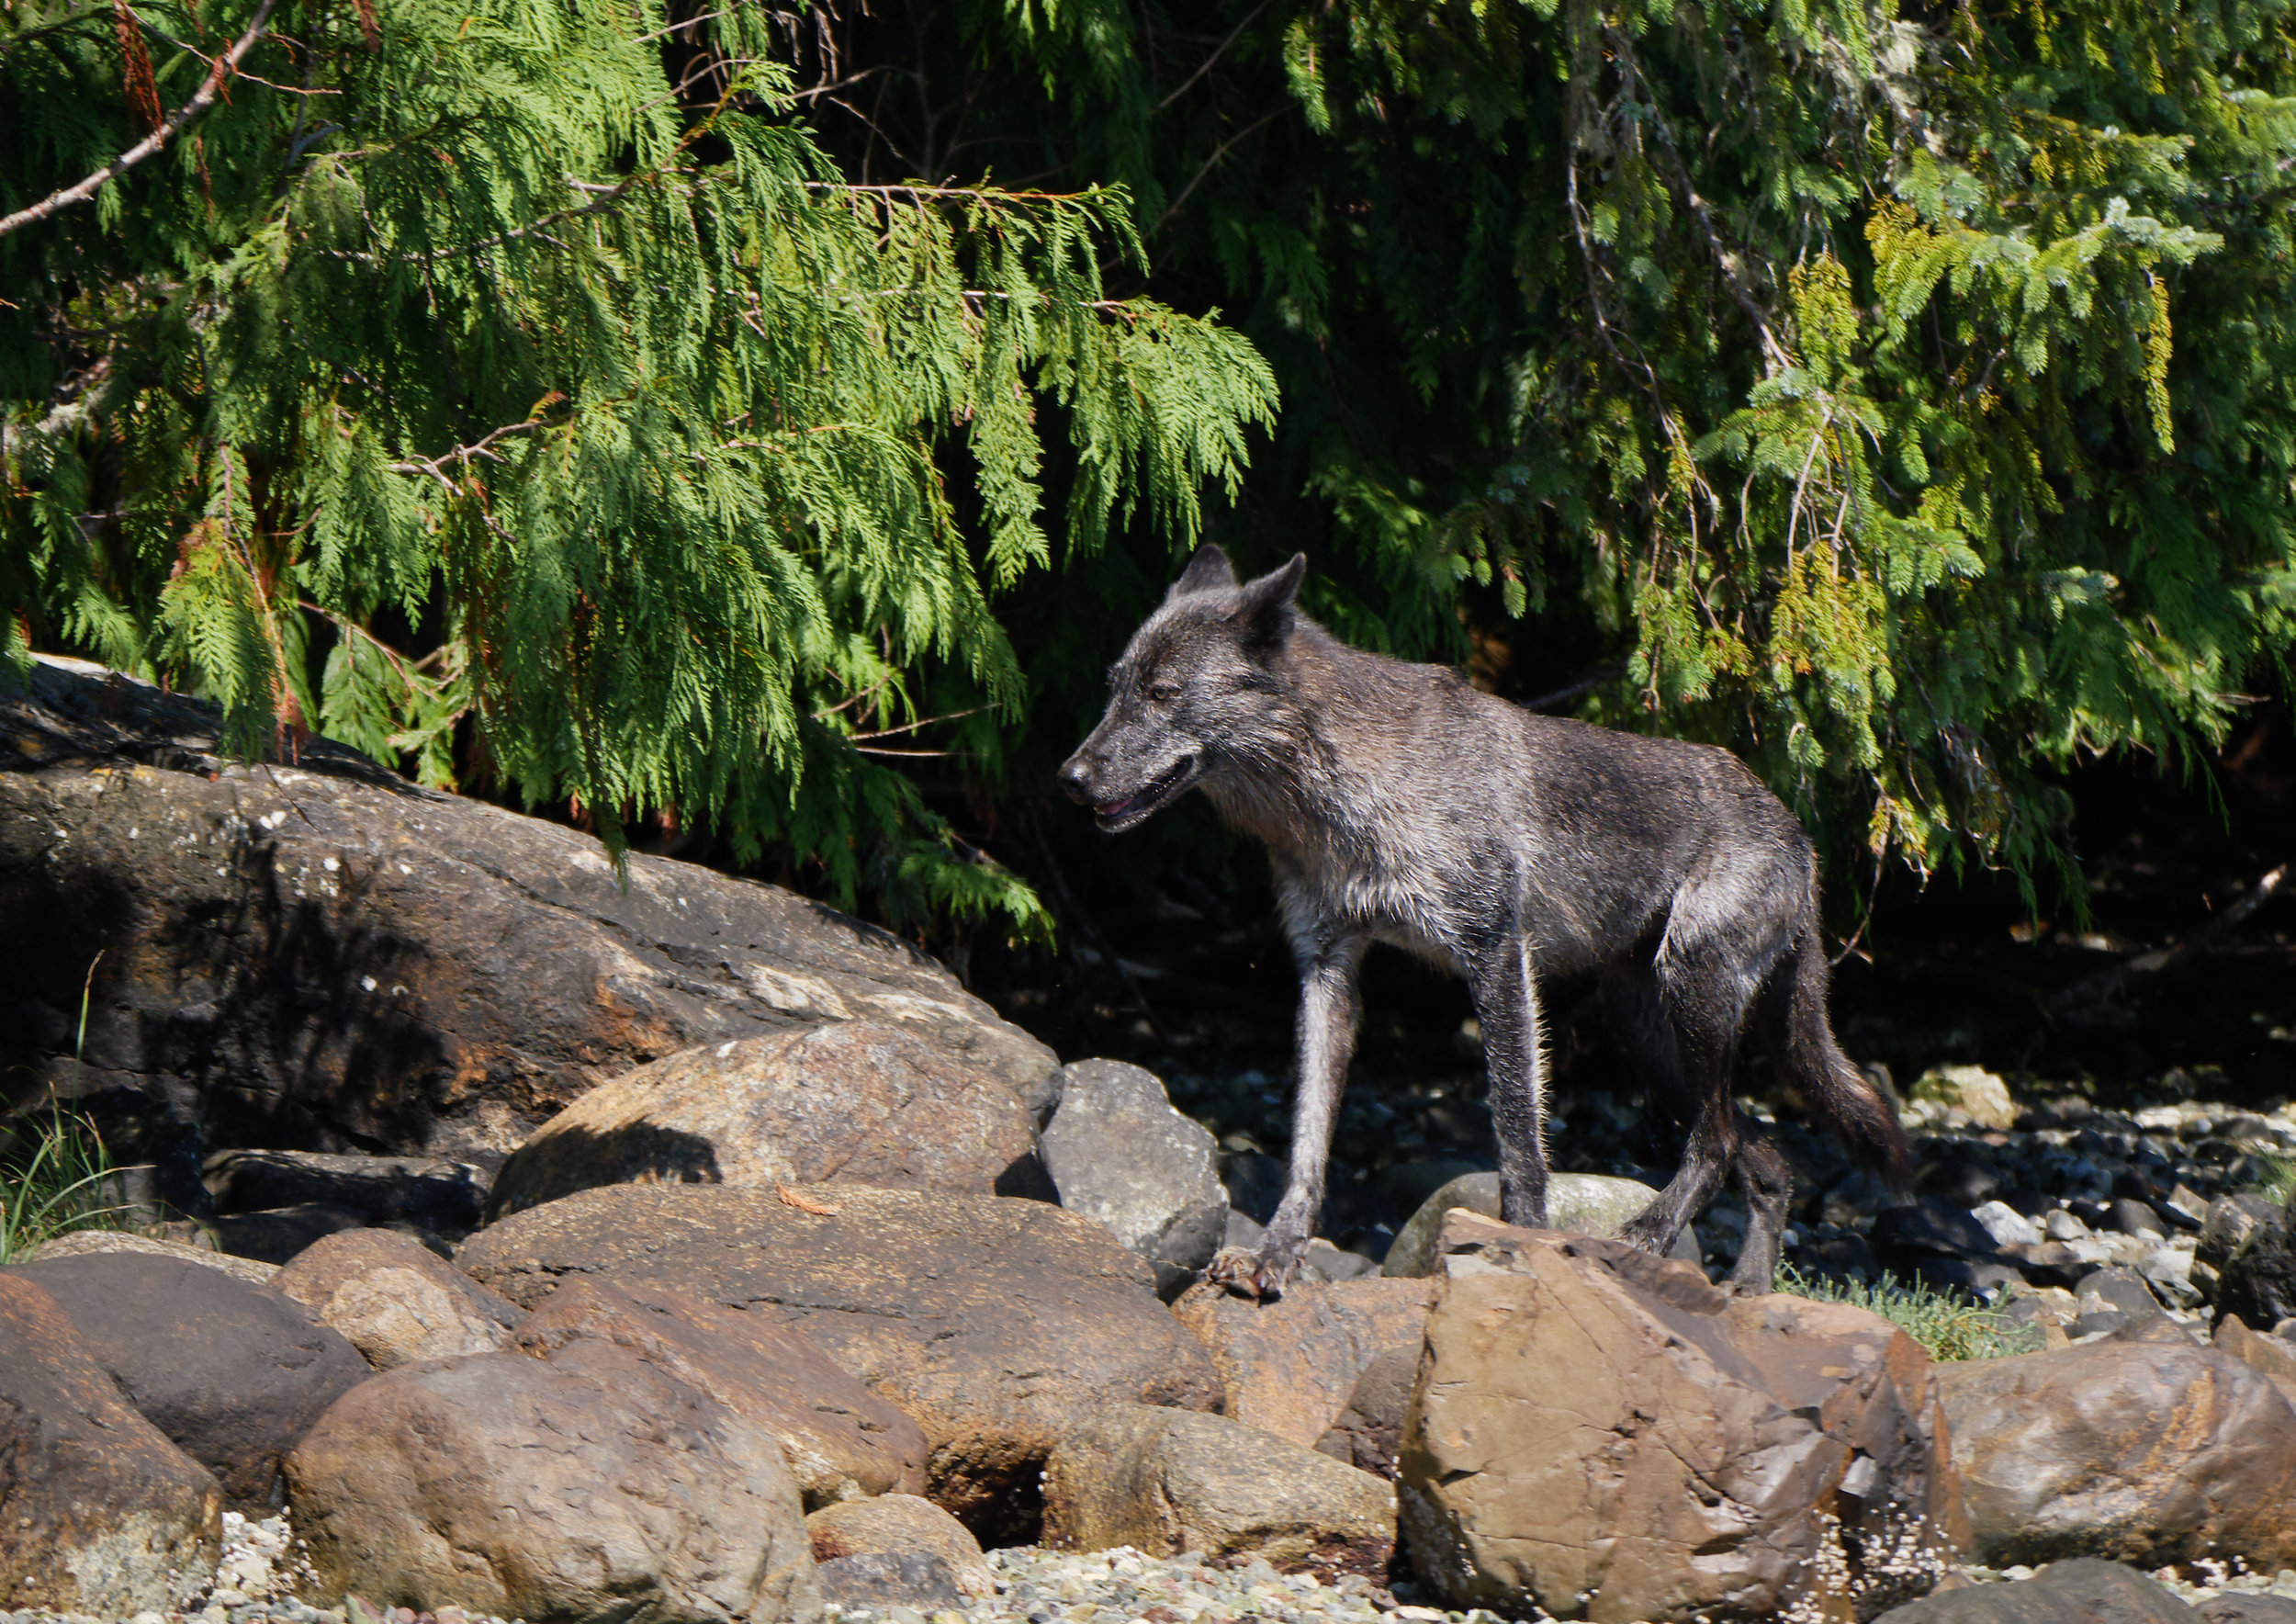 BC wolf images